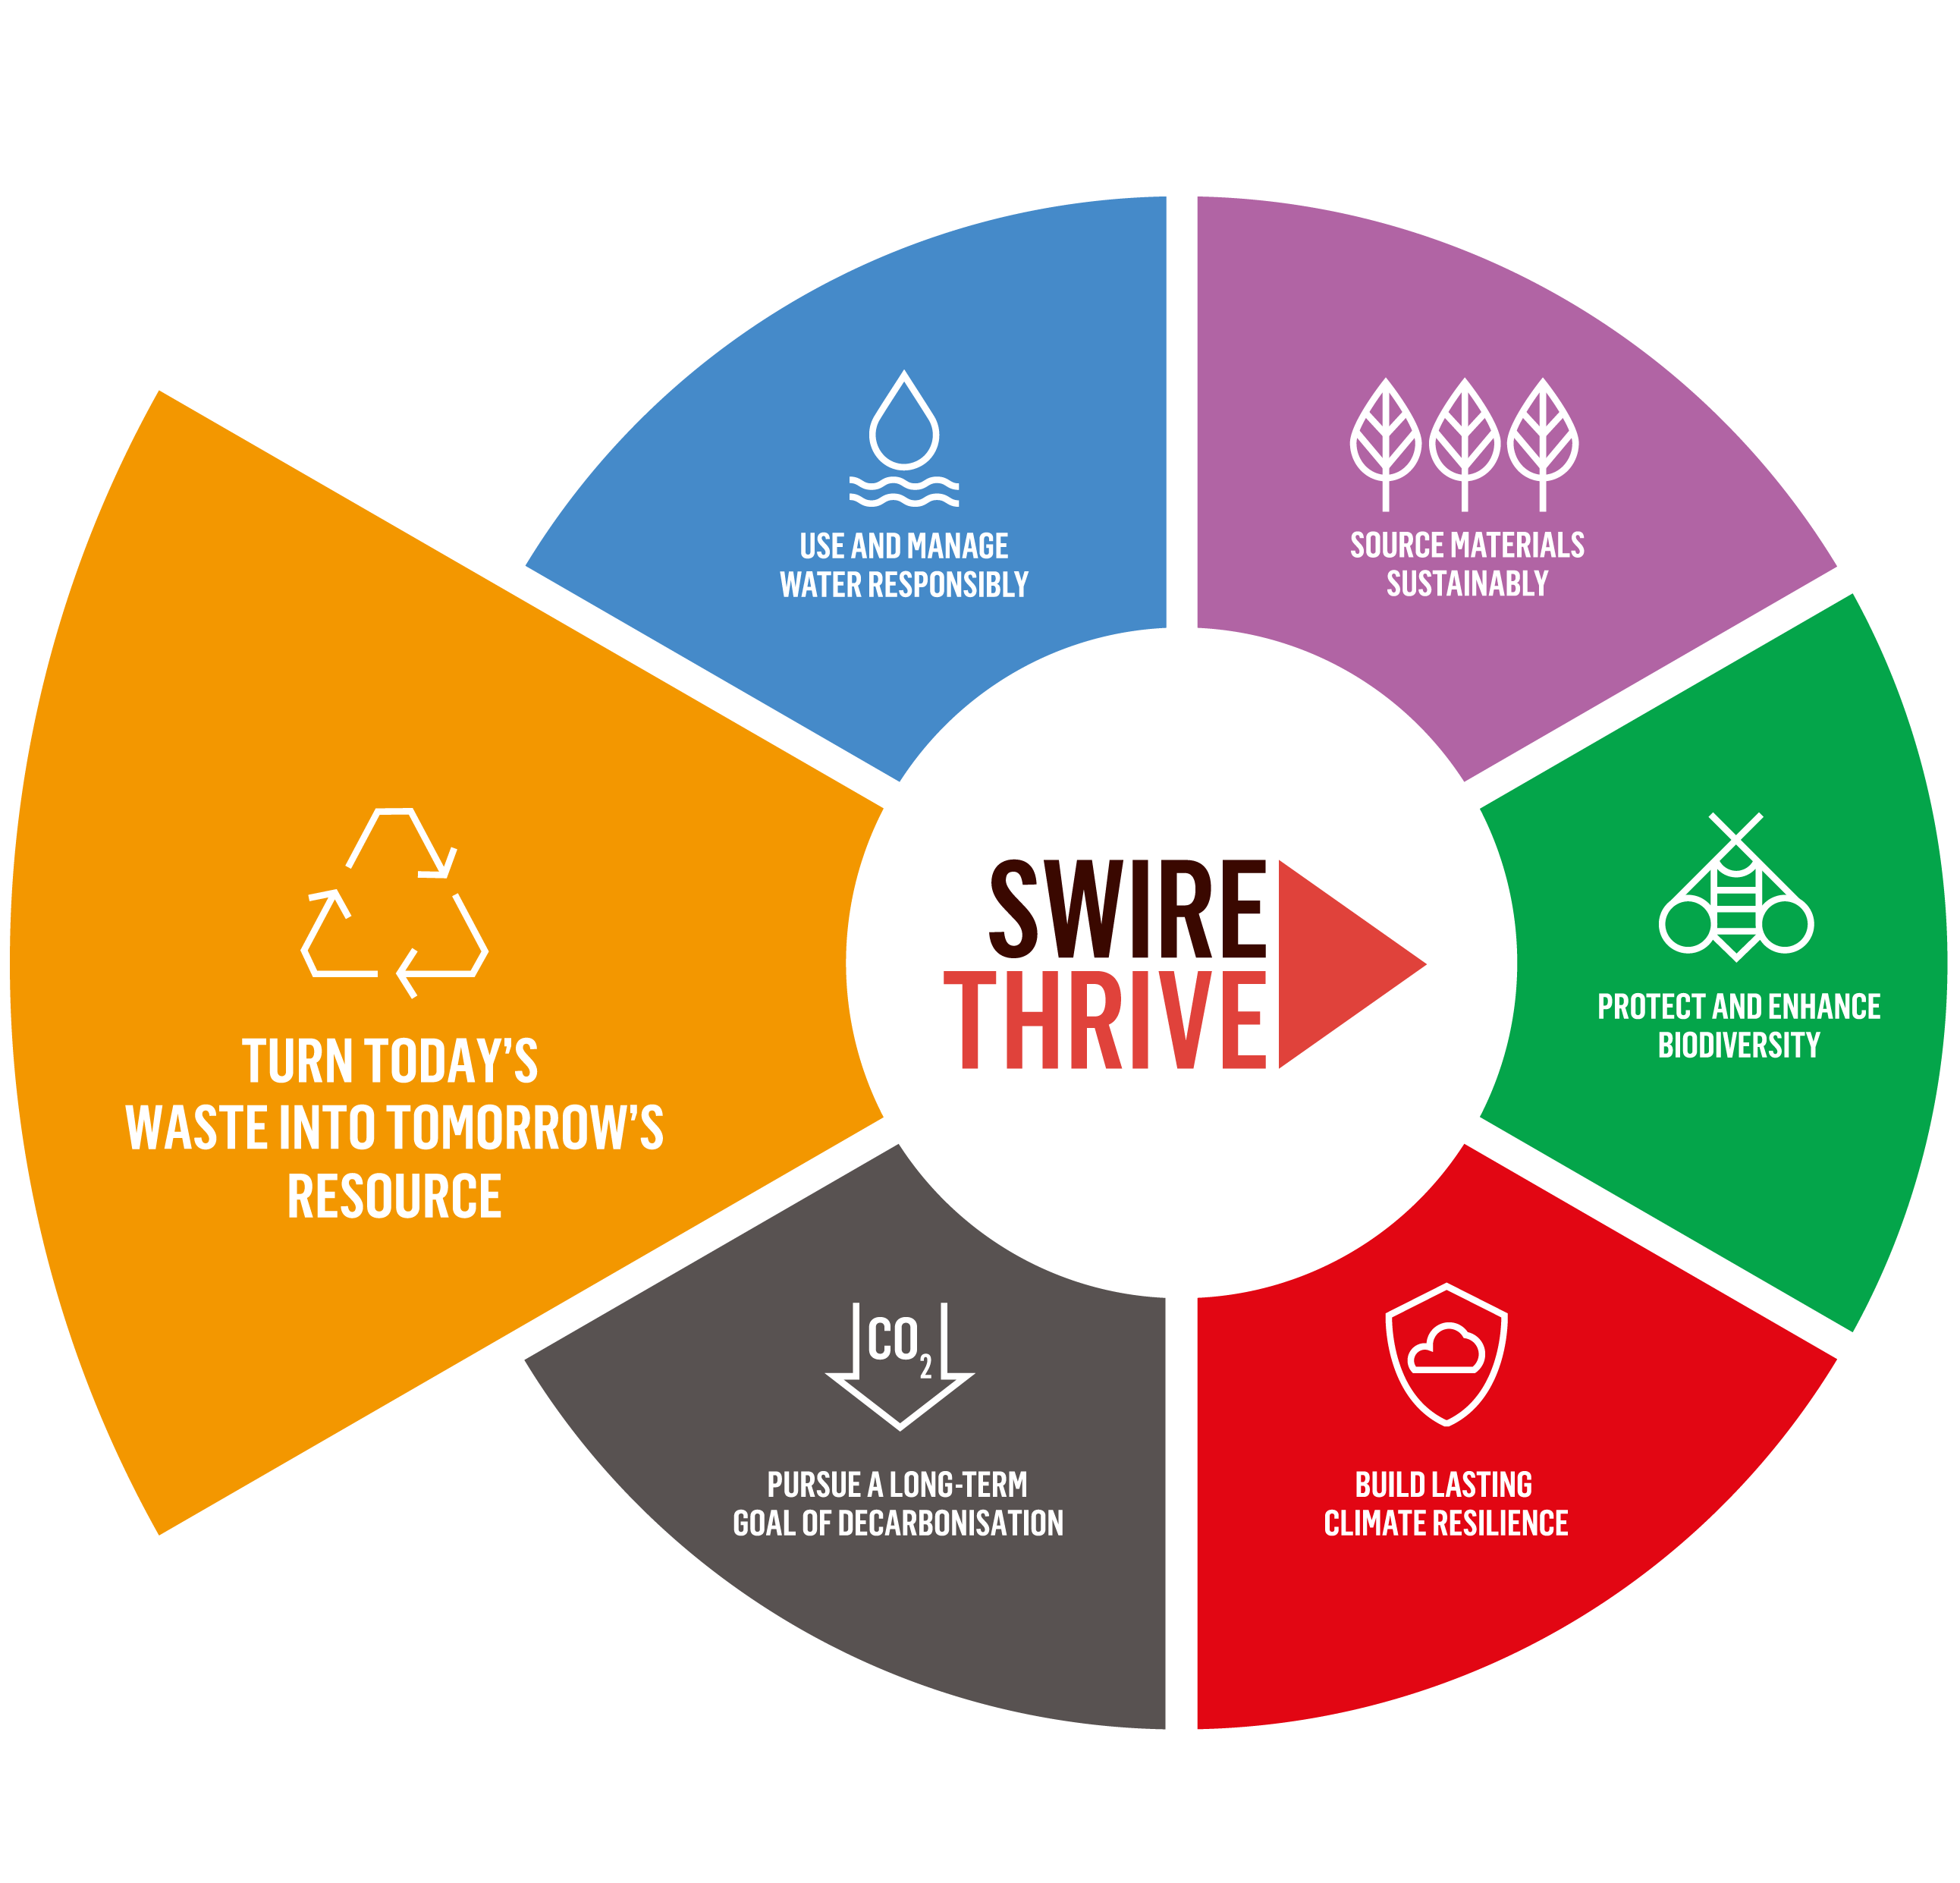 SWIRE THRIVE - Turn today's waste into tomorrow's resource